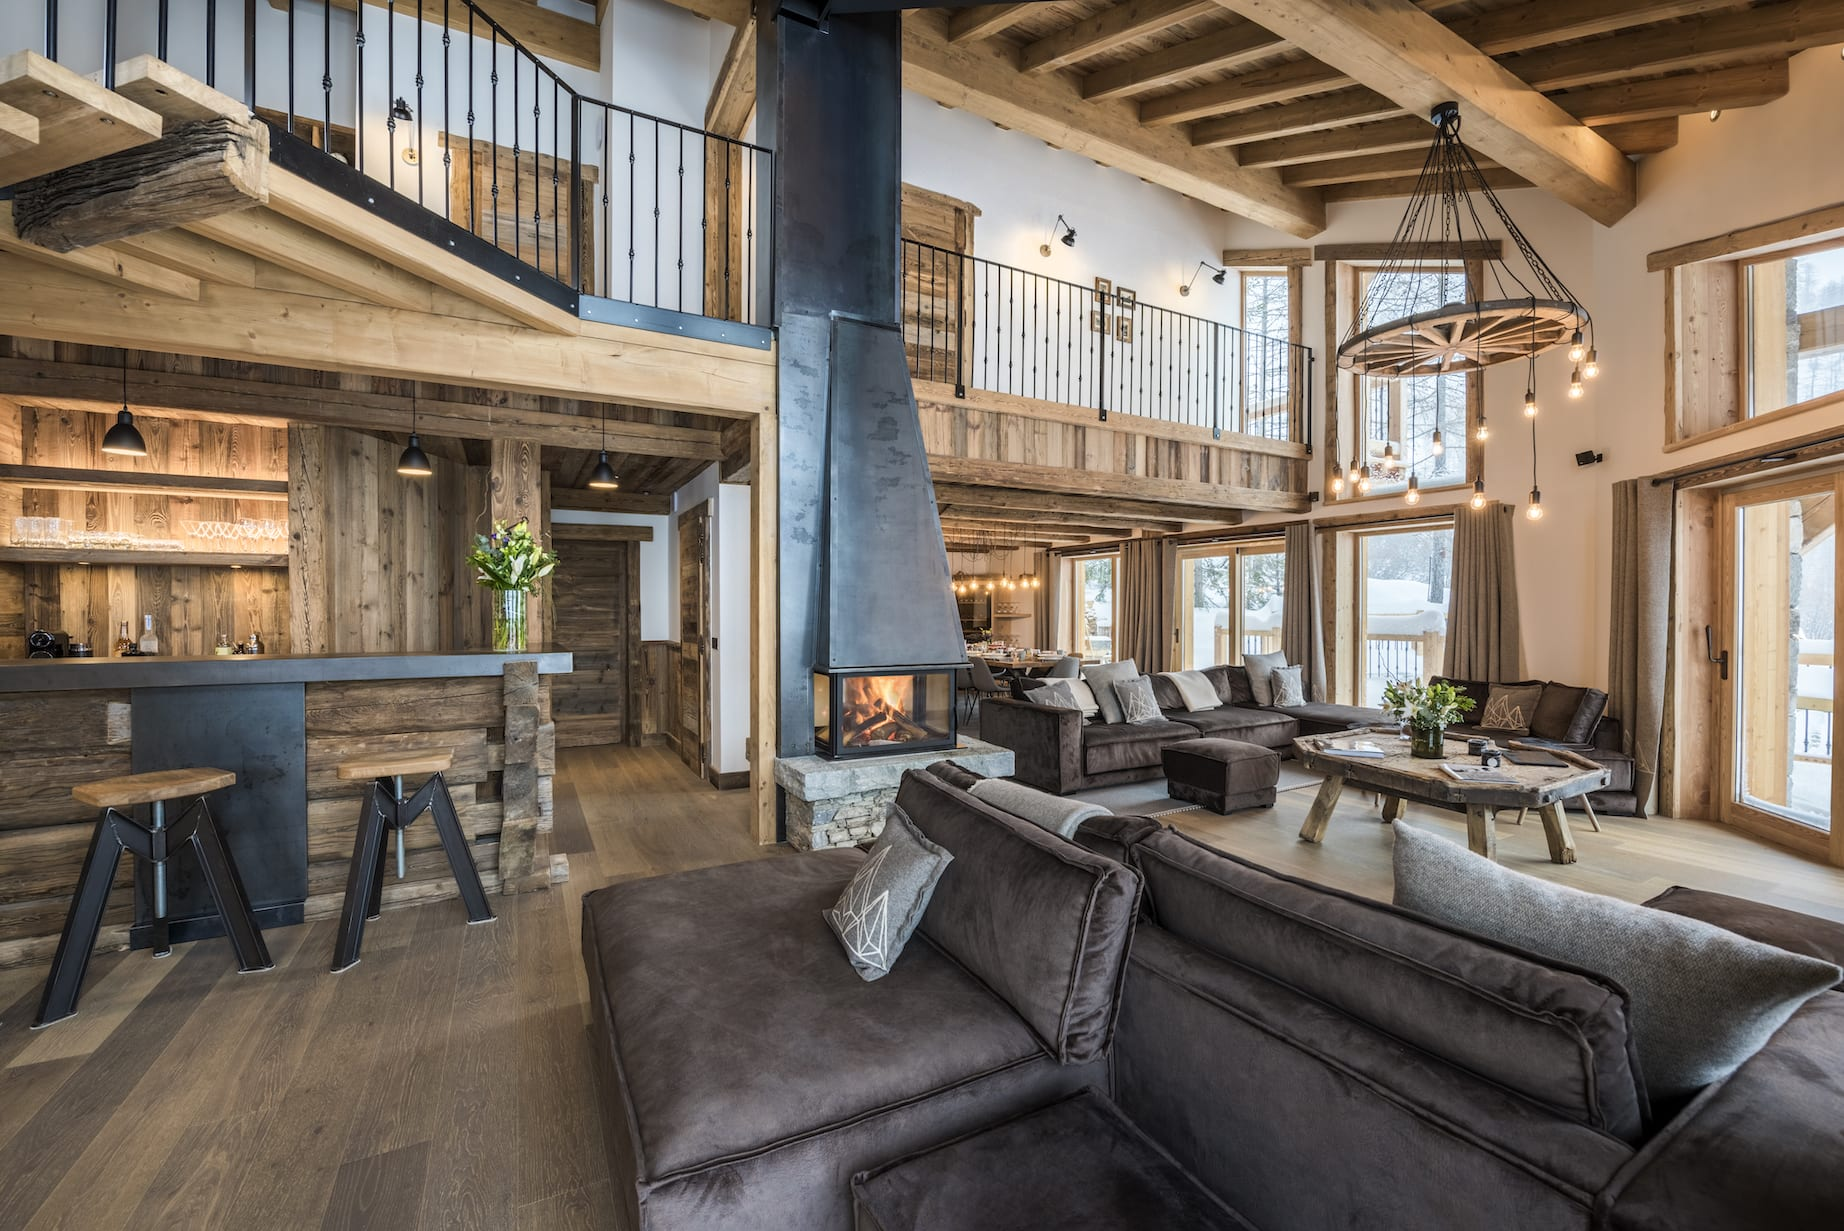 Chalet Machapuchare living room with mezzanine, fireplace, kitchen stools and comfy grey sofas.